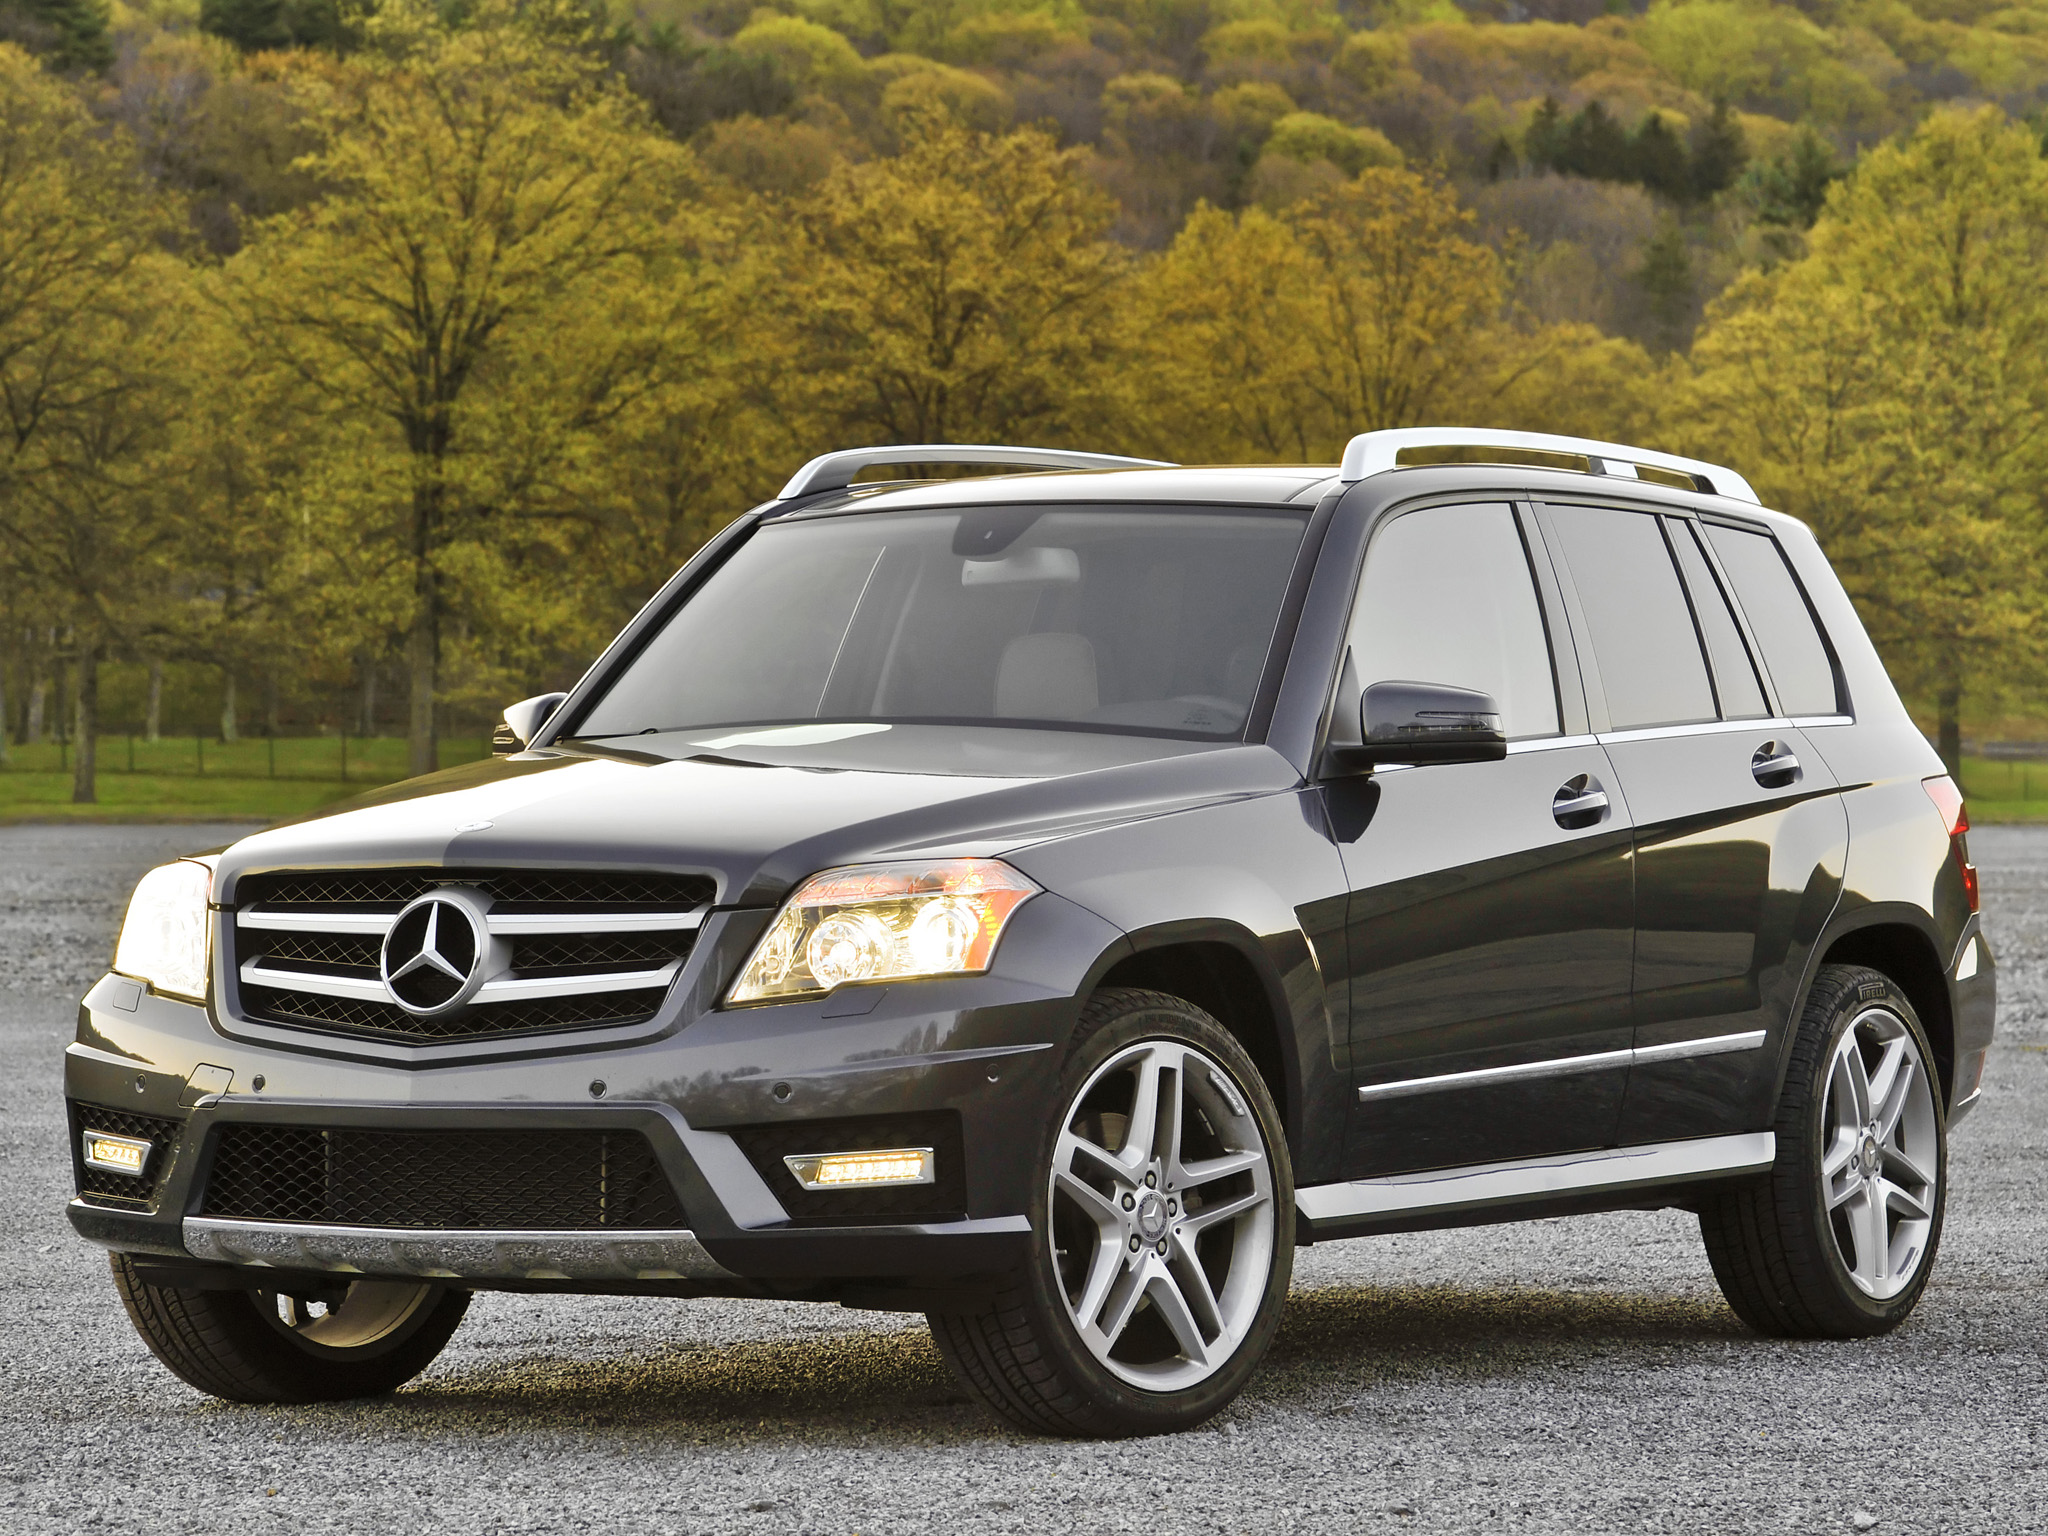 mercedes benz glk amg photos photo gallery page 3. Black Bedroom Furniture Sets. Home Design Ideas